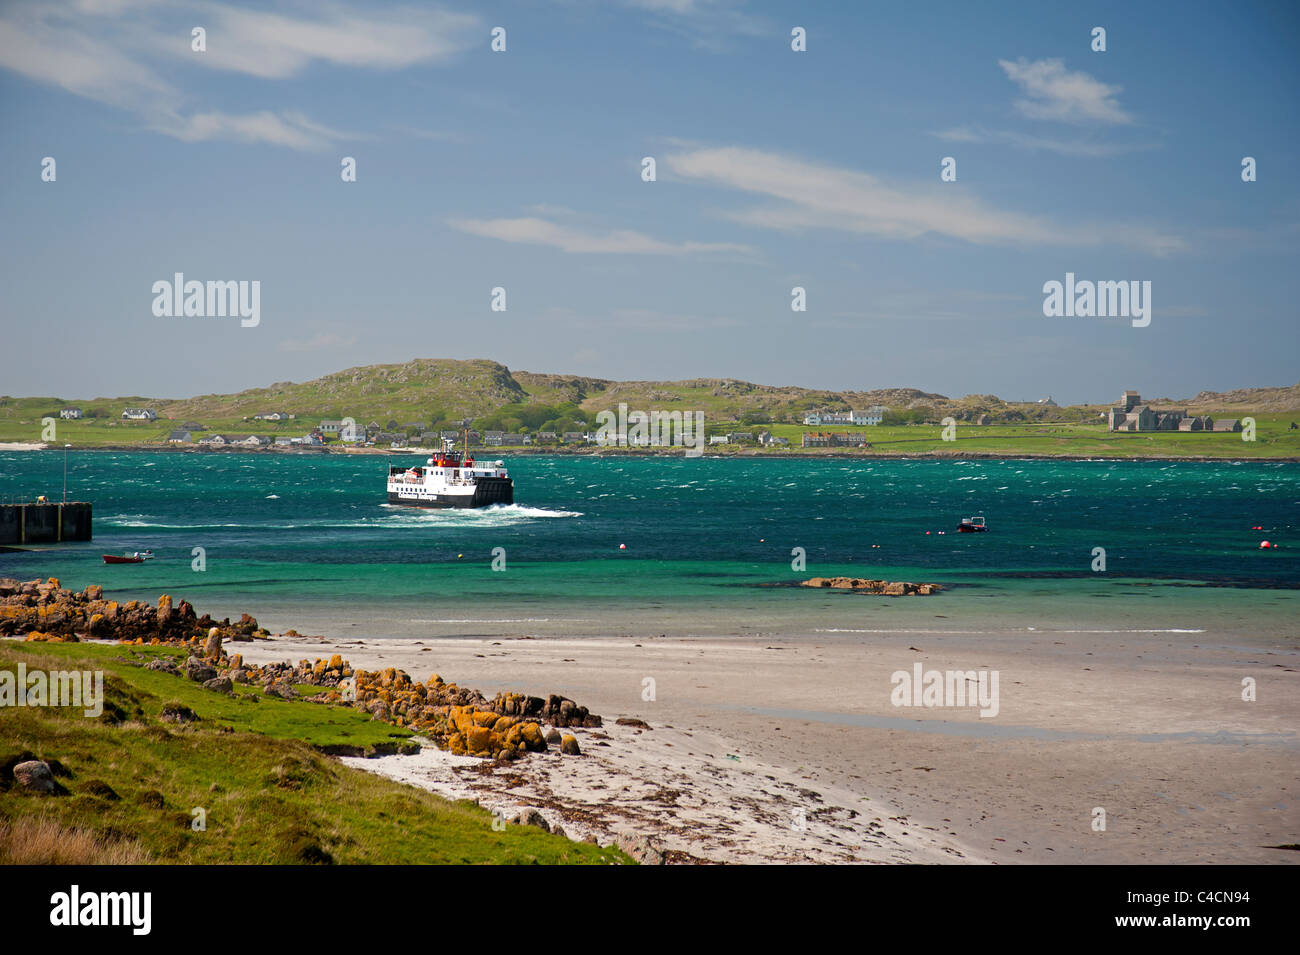 The Cal Mac Ferry Loch Buie Crossing the Sound of Iona from Fionnphort, Mull to the Island of Iona.  SCO 7211 - Stock Image